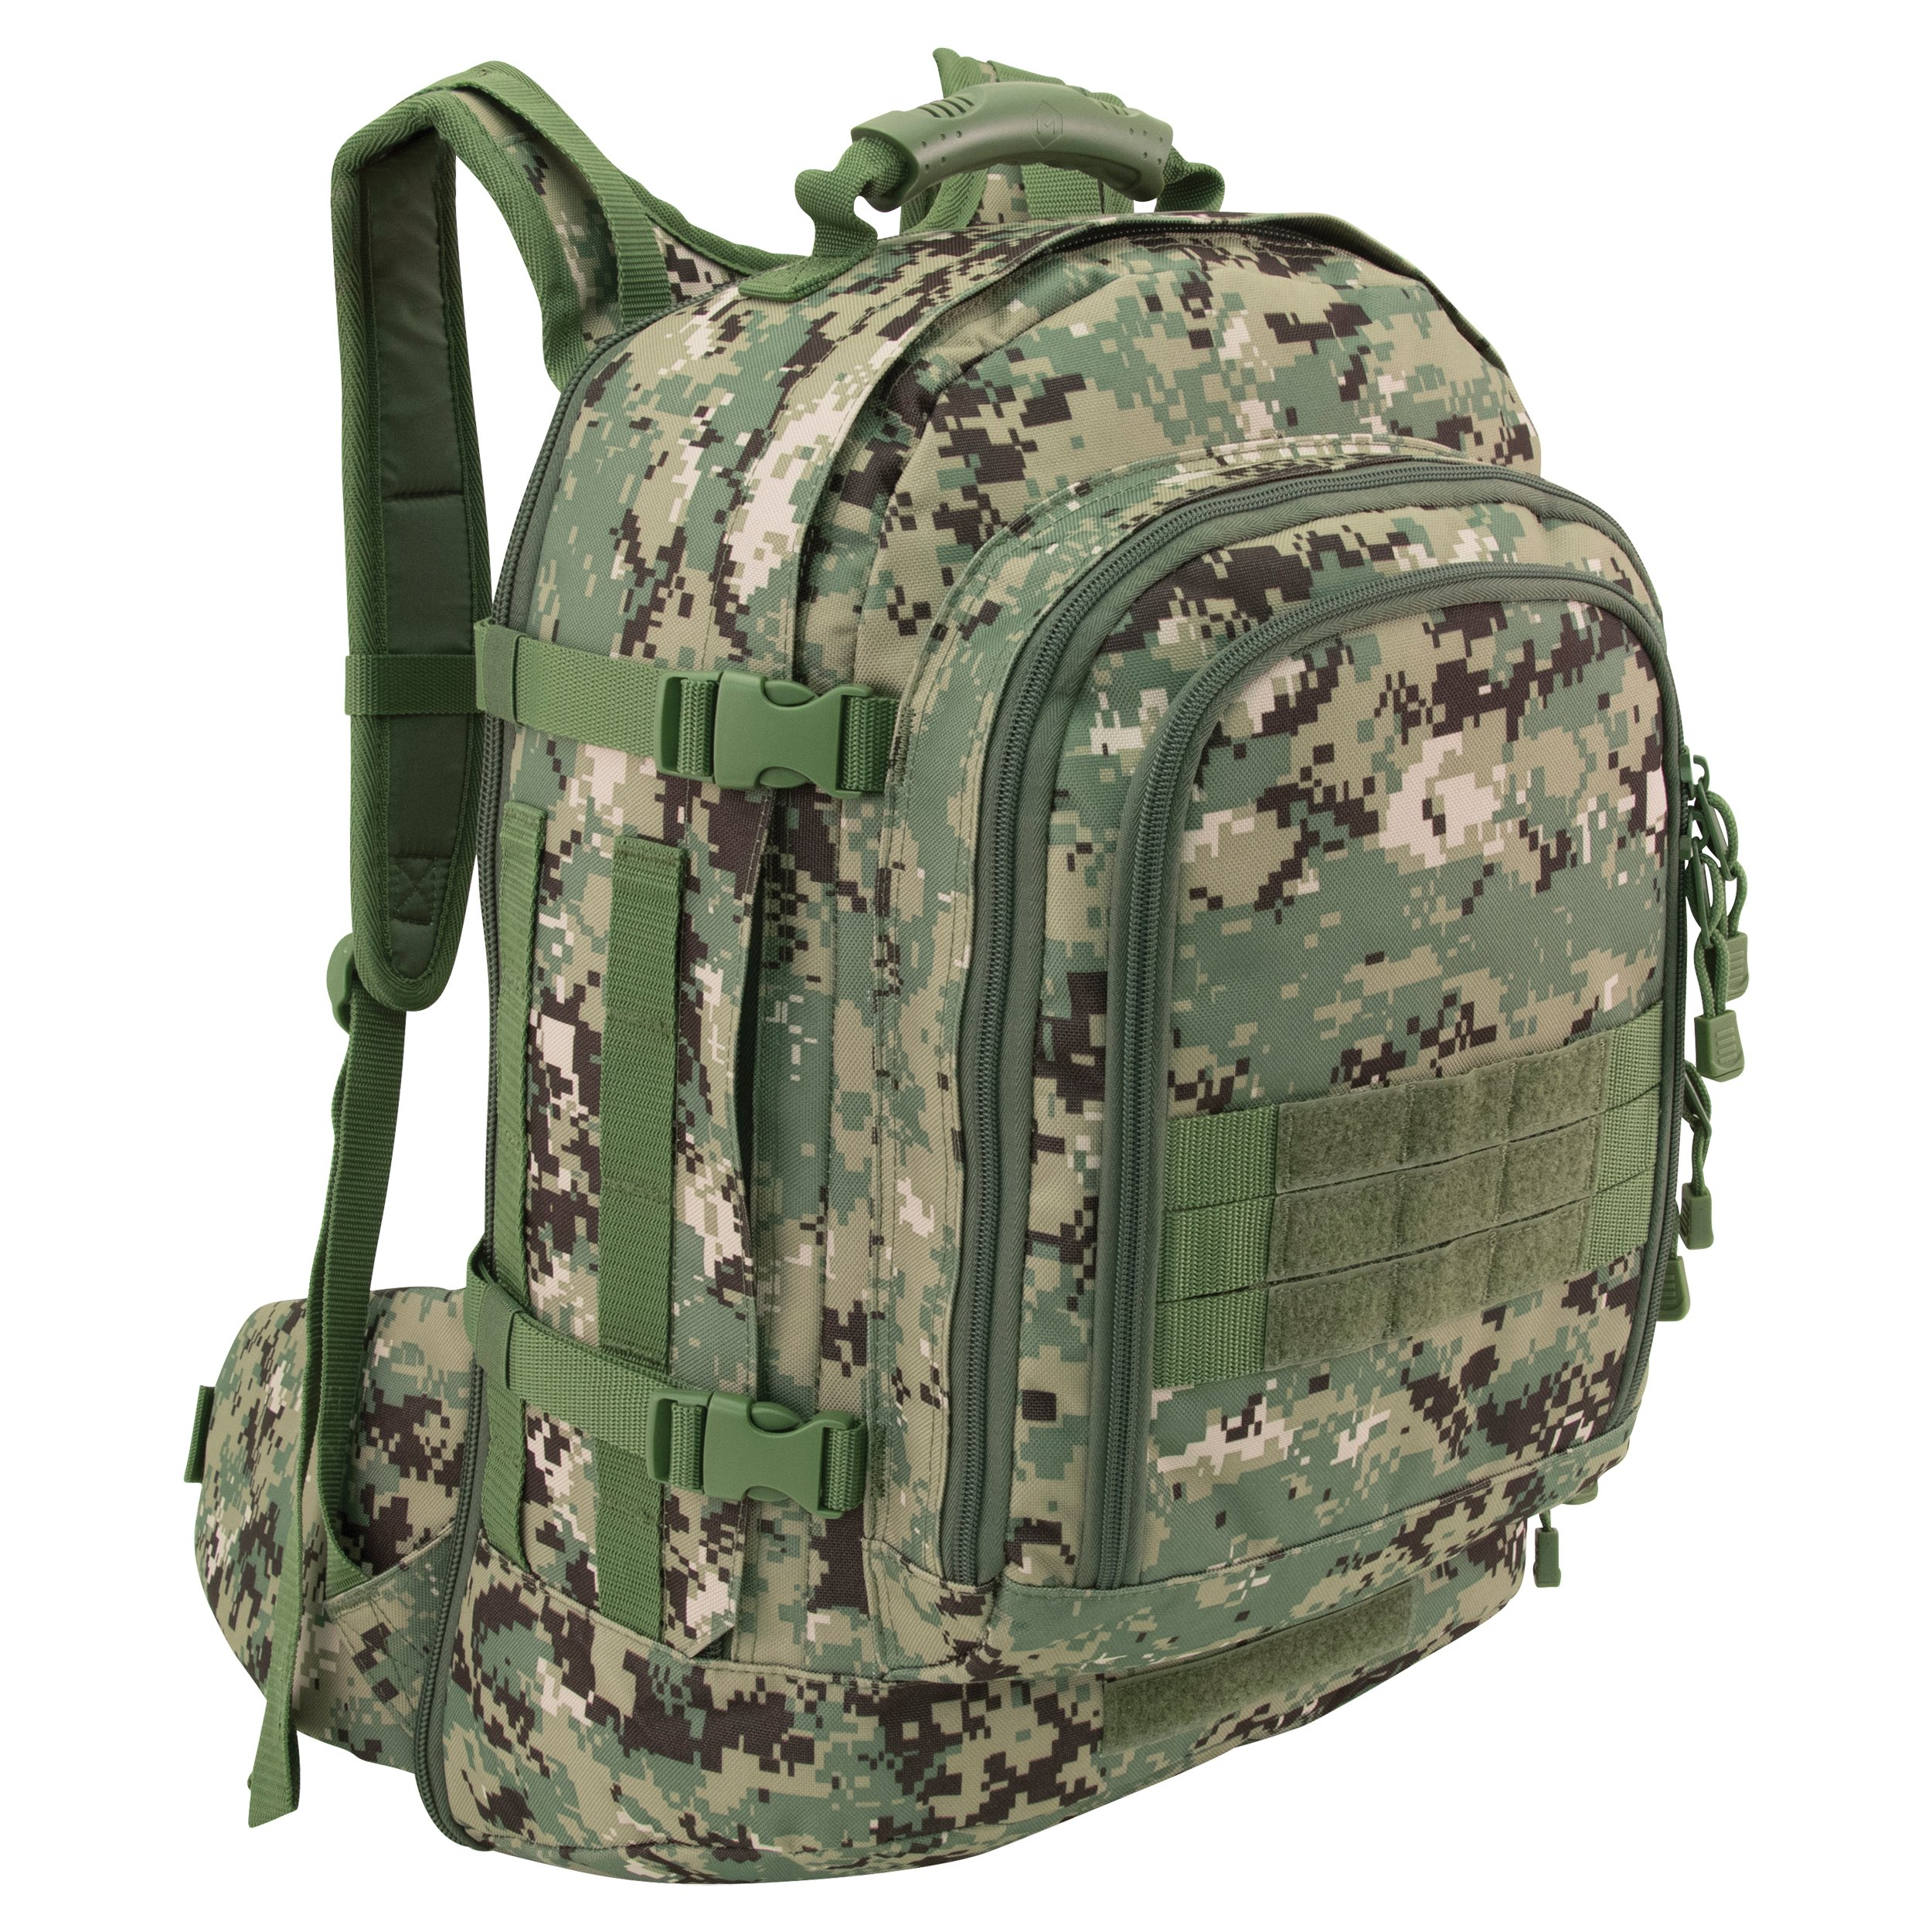 NWU Type III 3 Day Stretch Backpack US Navy Camo by Code Alpha